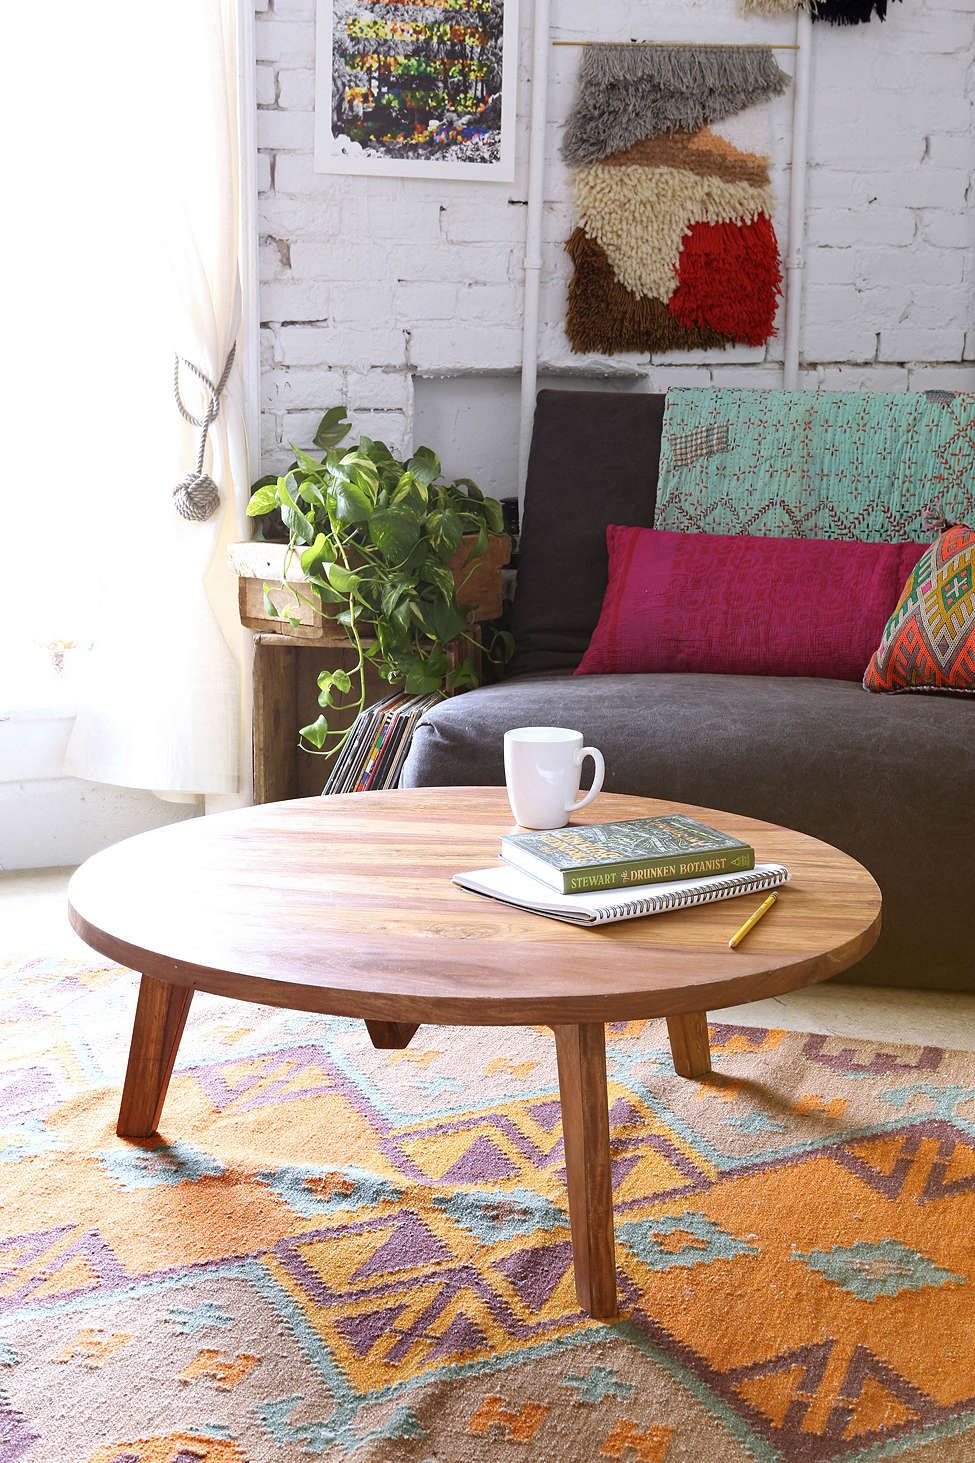 Round Modern Coffee Table Table Decor Living Room Coffee Table Living Room Coffee Table [ 1463 x 975 Pixel ]